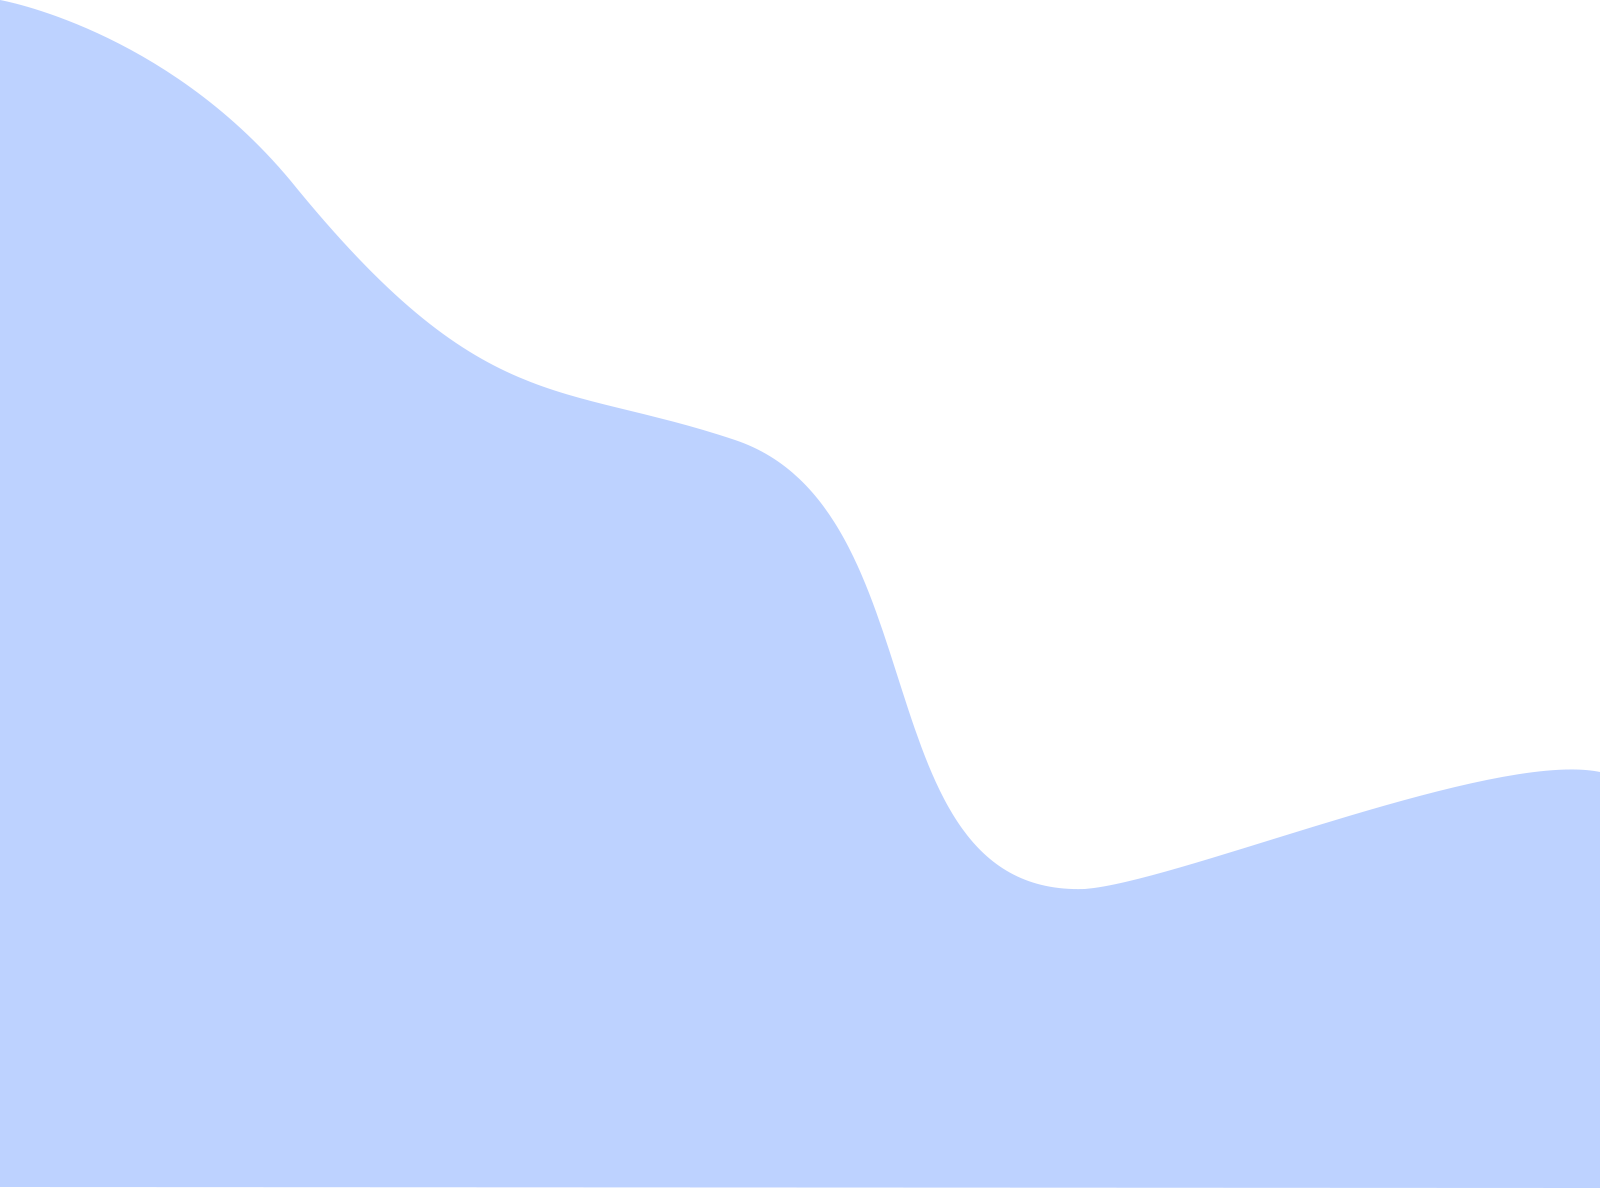 img/section-index-two-background-one.png